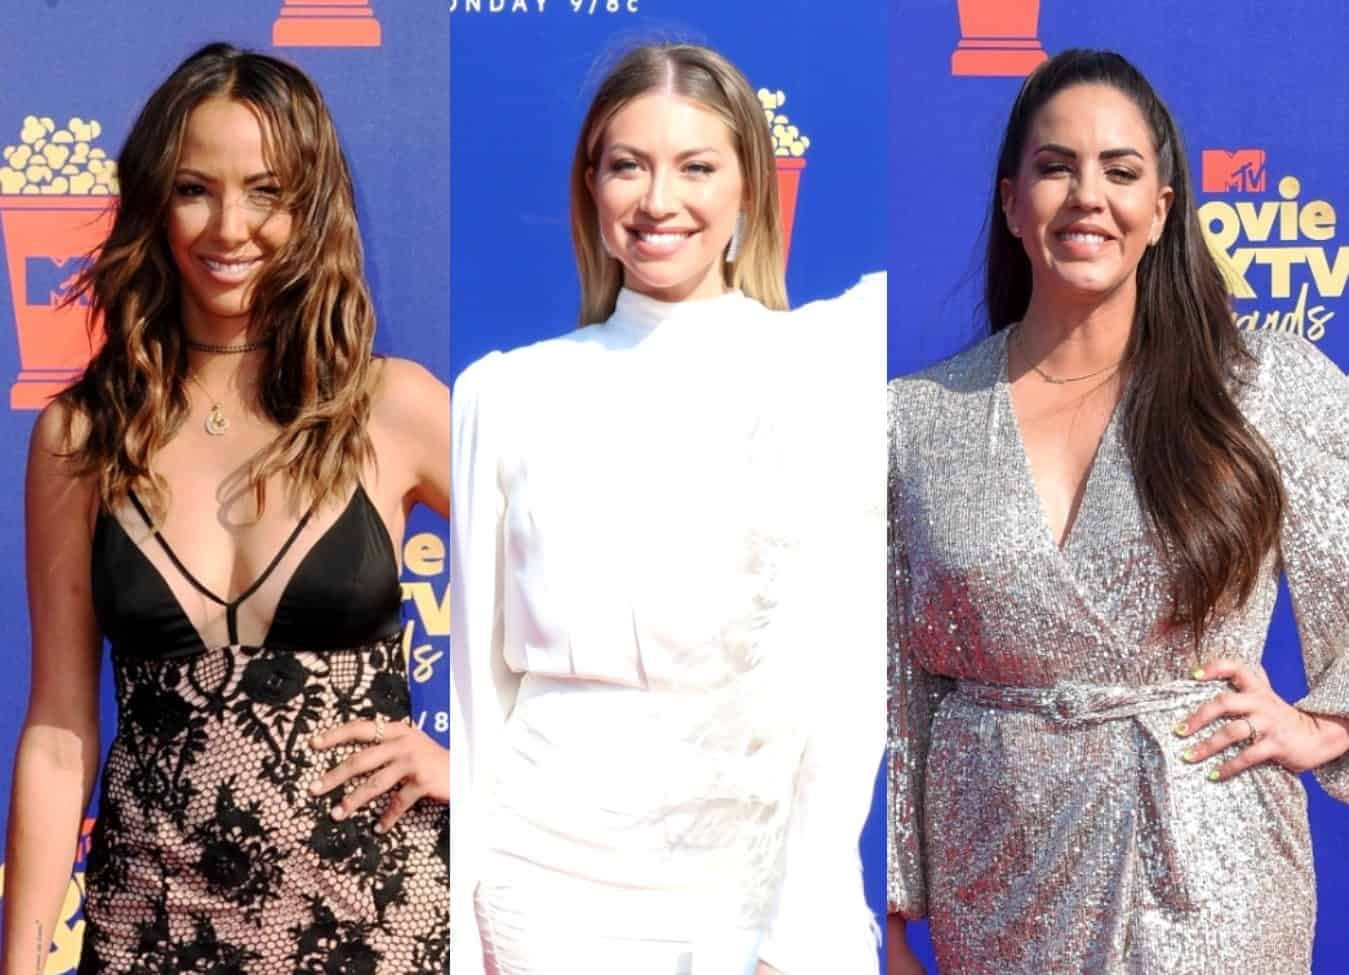 """Vanderpump Rules' Kristen Doute Explains Why She 'No Longer Cares' to Reconcile With Stassi Schroeder and Katie Maloney, Wonders Why it Was """"So Easy"""" for Them to Cut Her Off"""